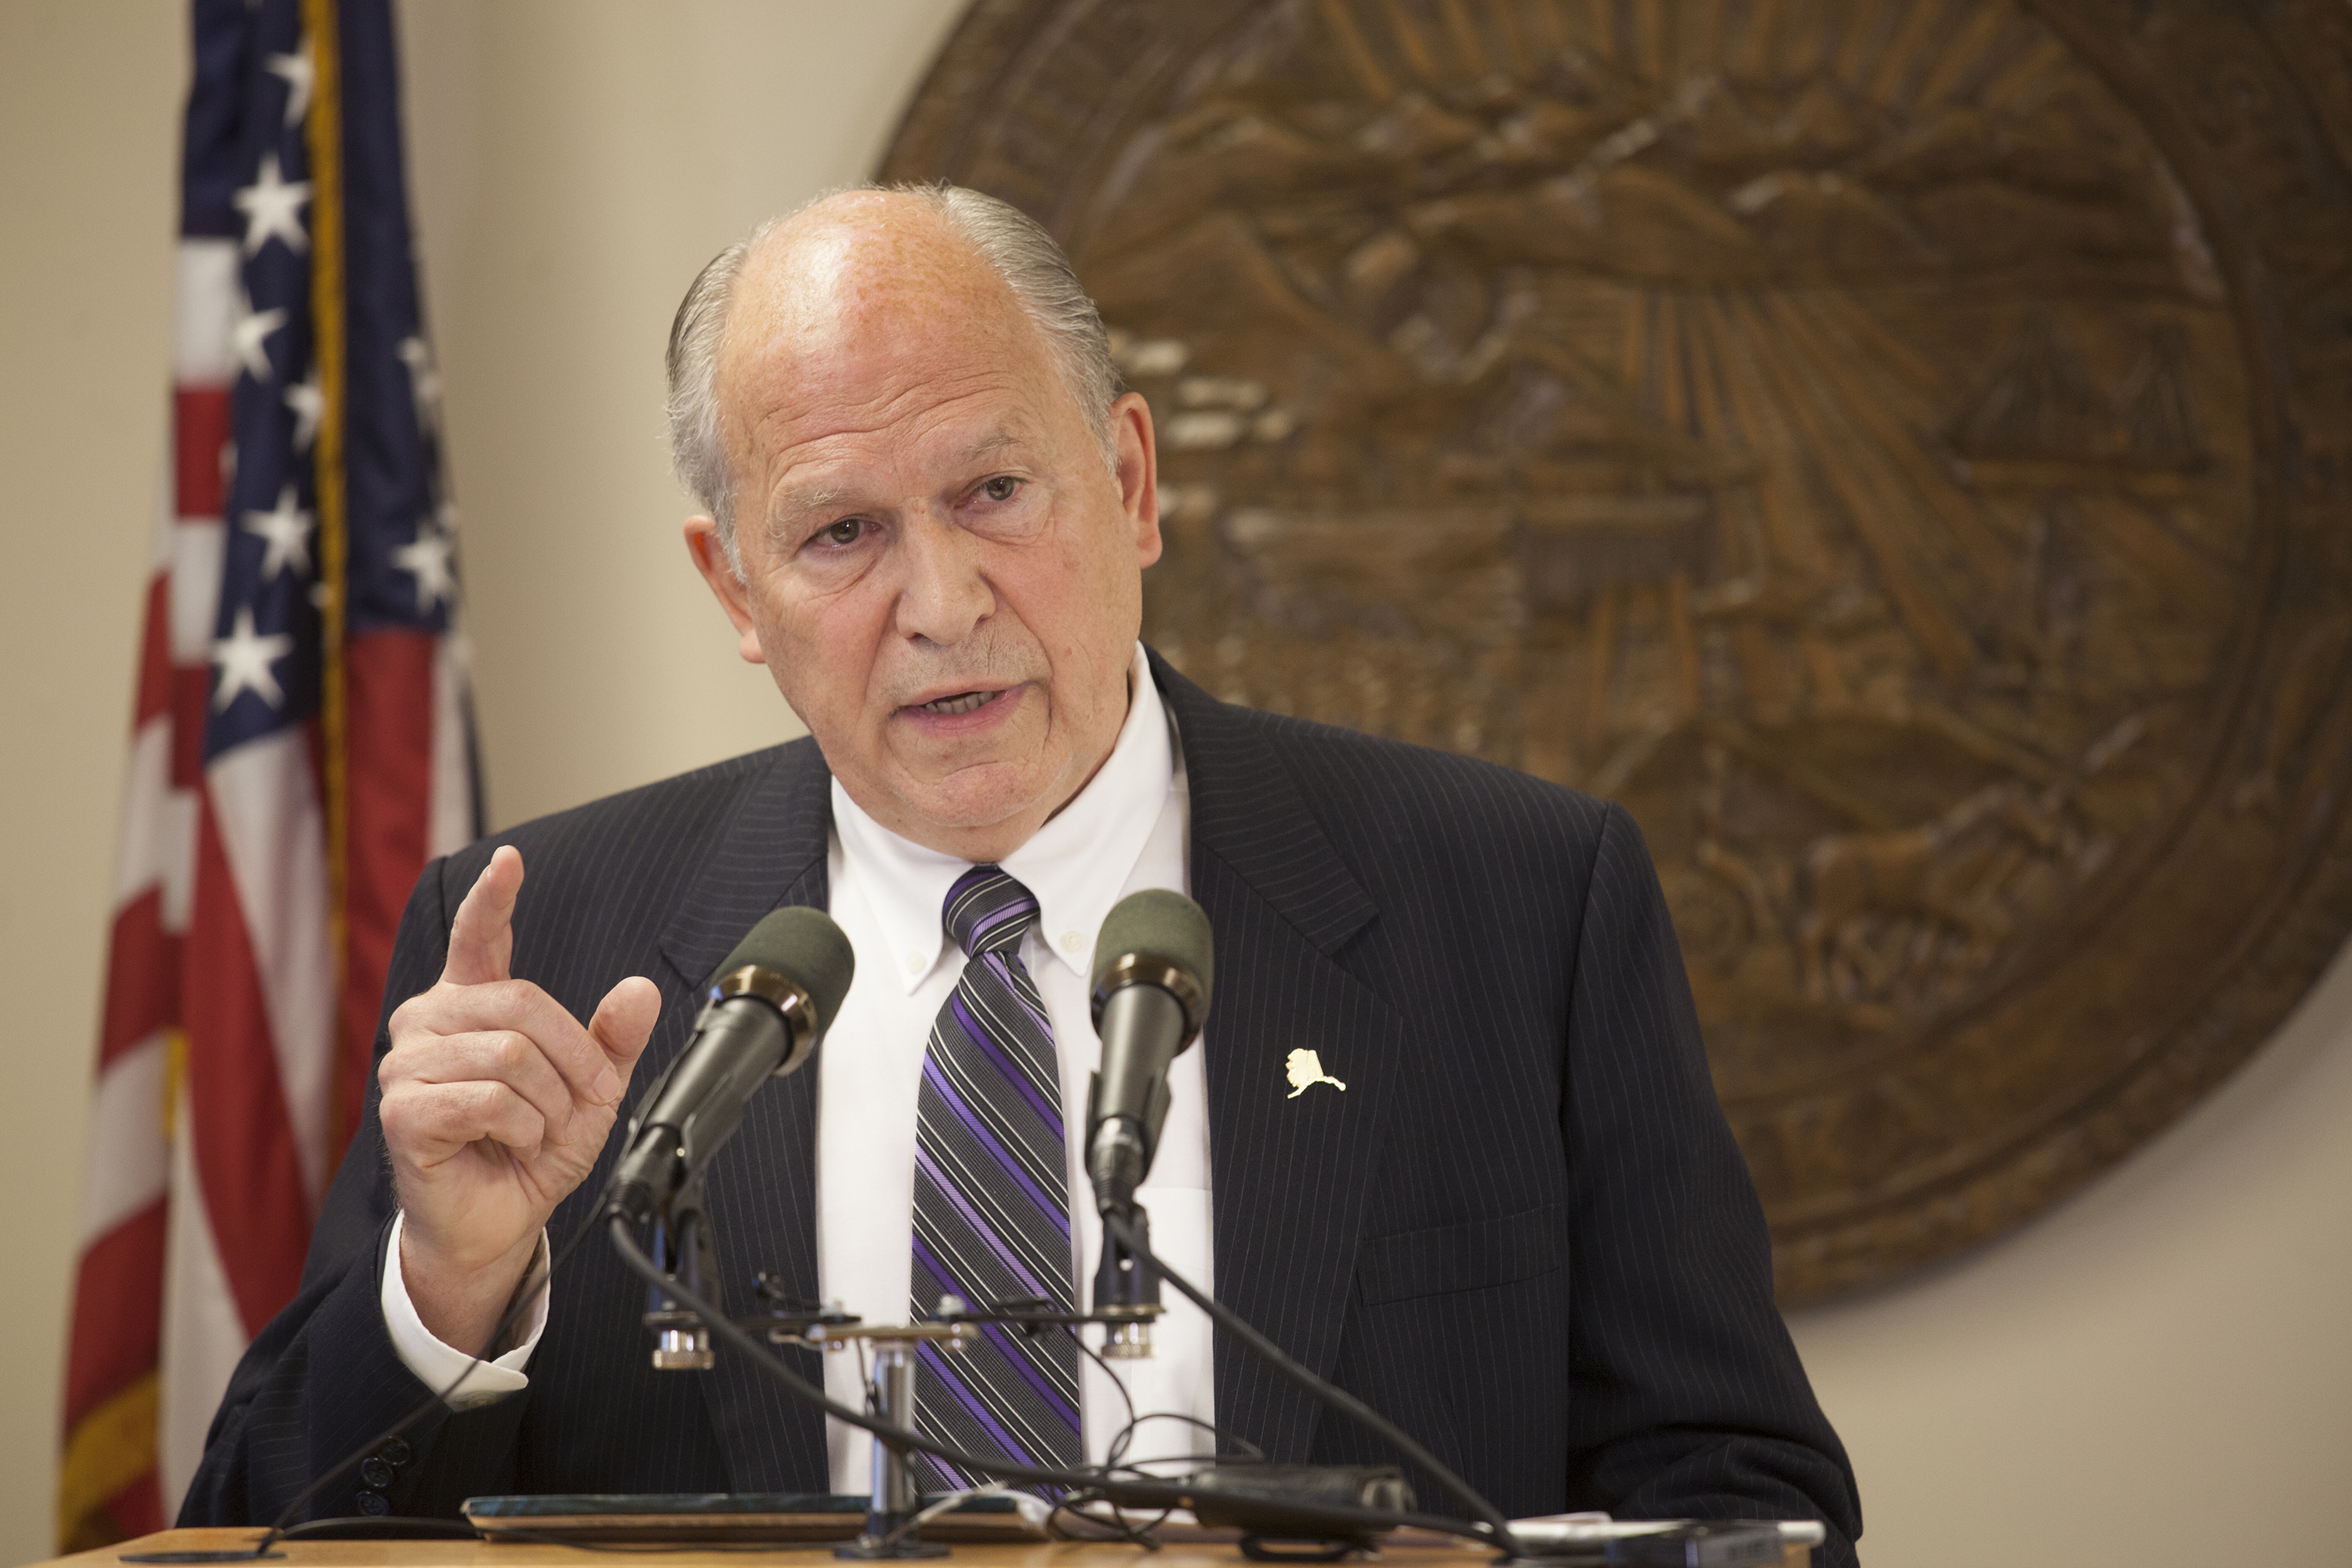 Alaska Gov. Bill Walker talks about the state's budget on Wednesday, June 1, 2016 during a press conference in Juneau, Alaska. (Photo by Rashah McChesney/KTOO)